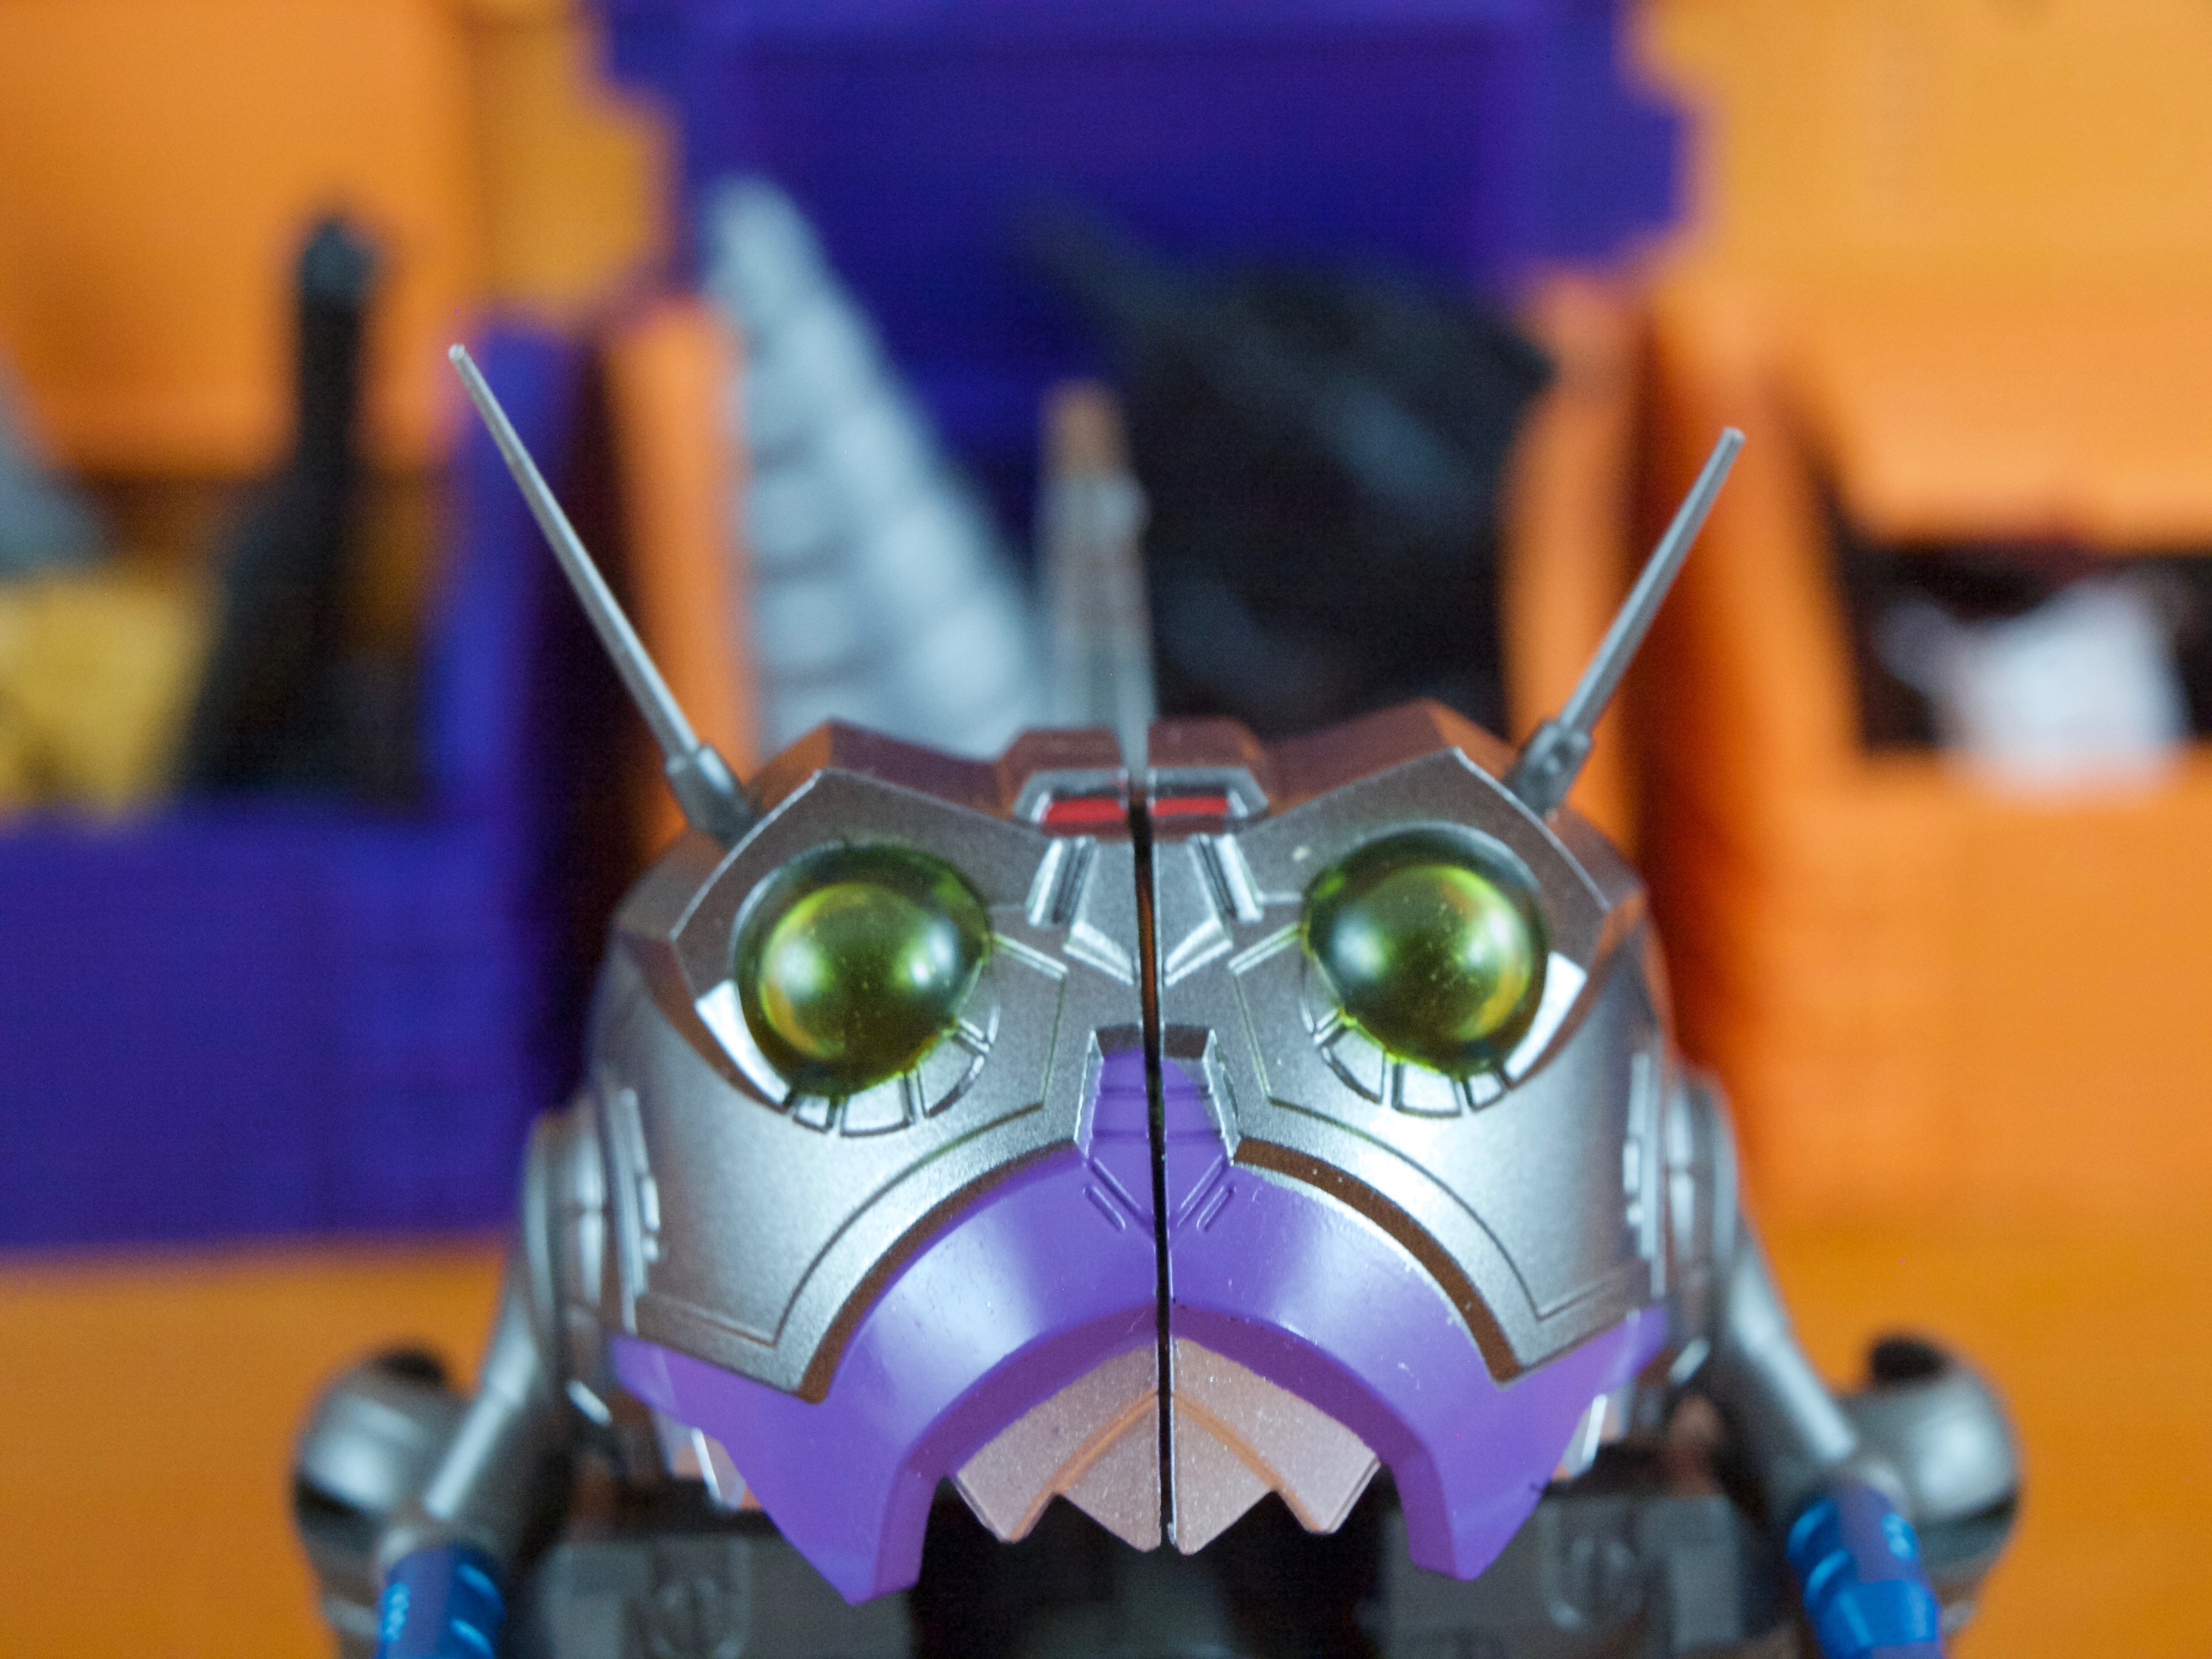 Sharktticons antennae